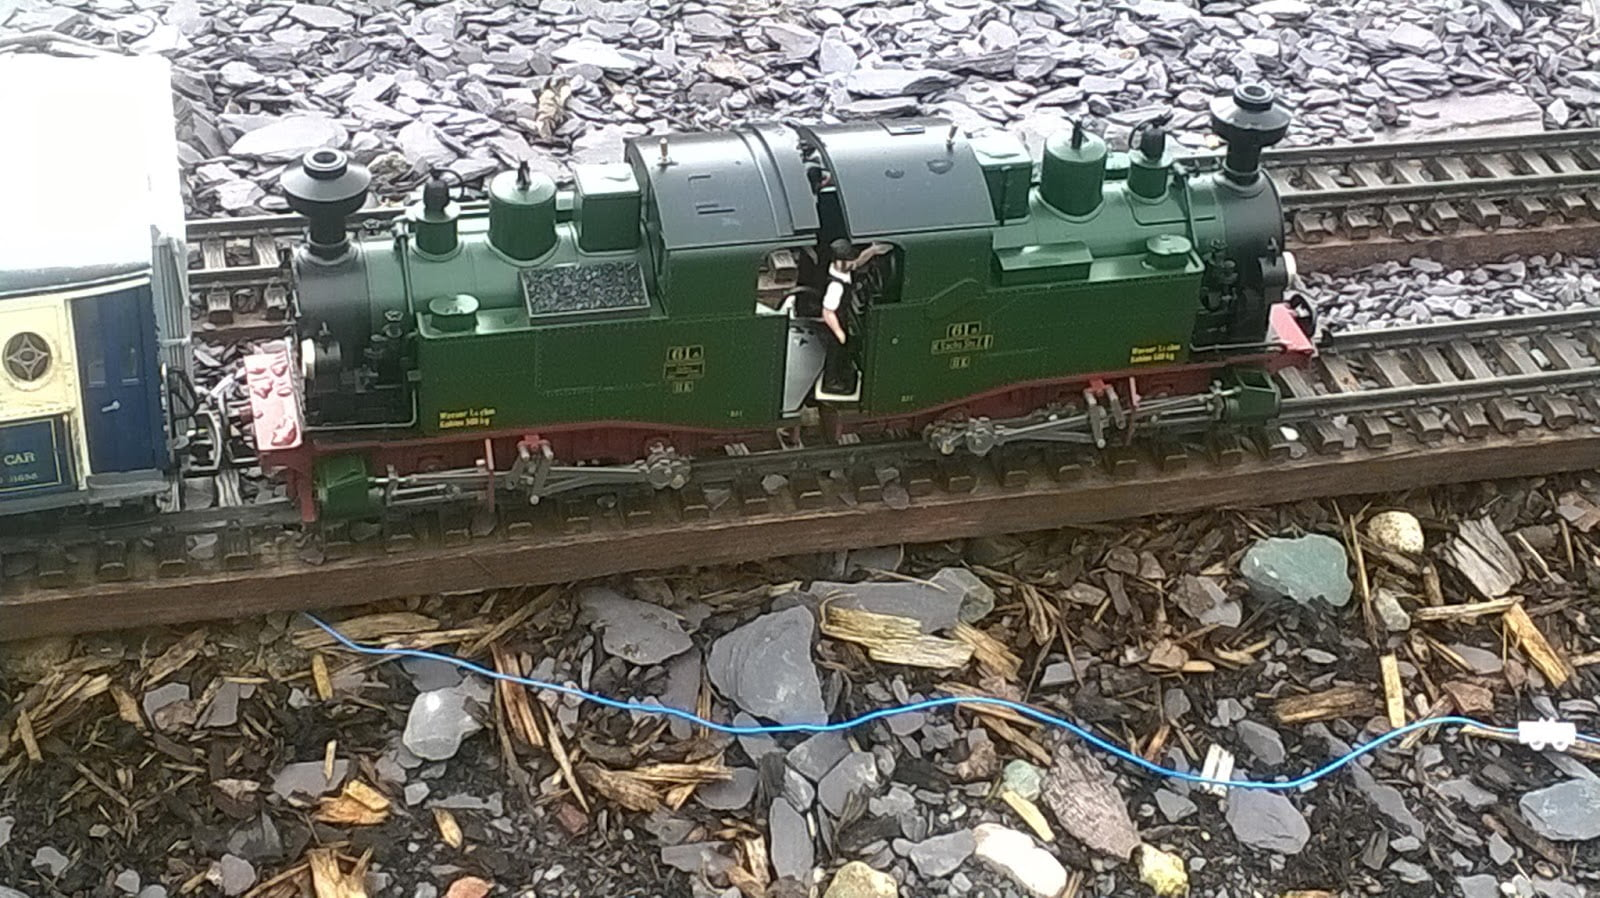 Model of a Double Farlie loco at Gypsy Wood Park